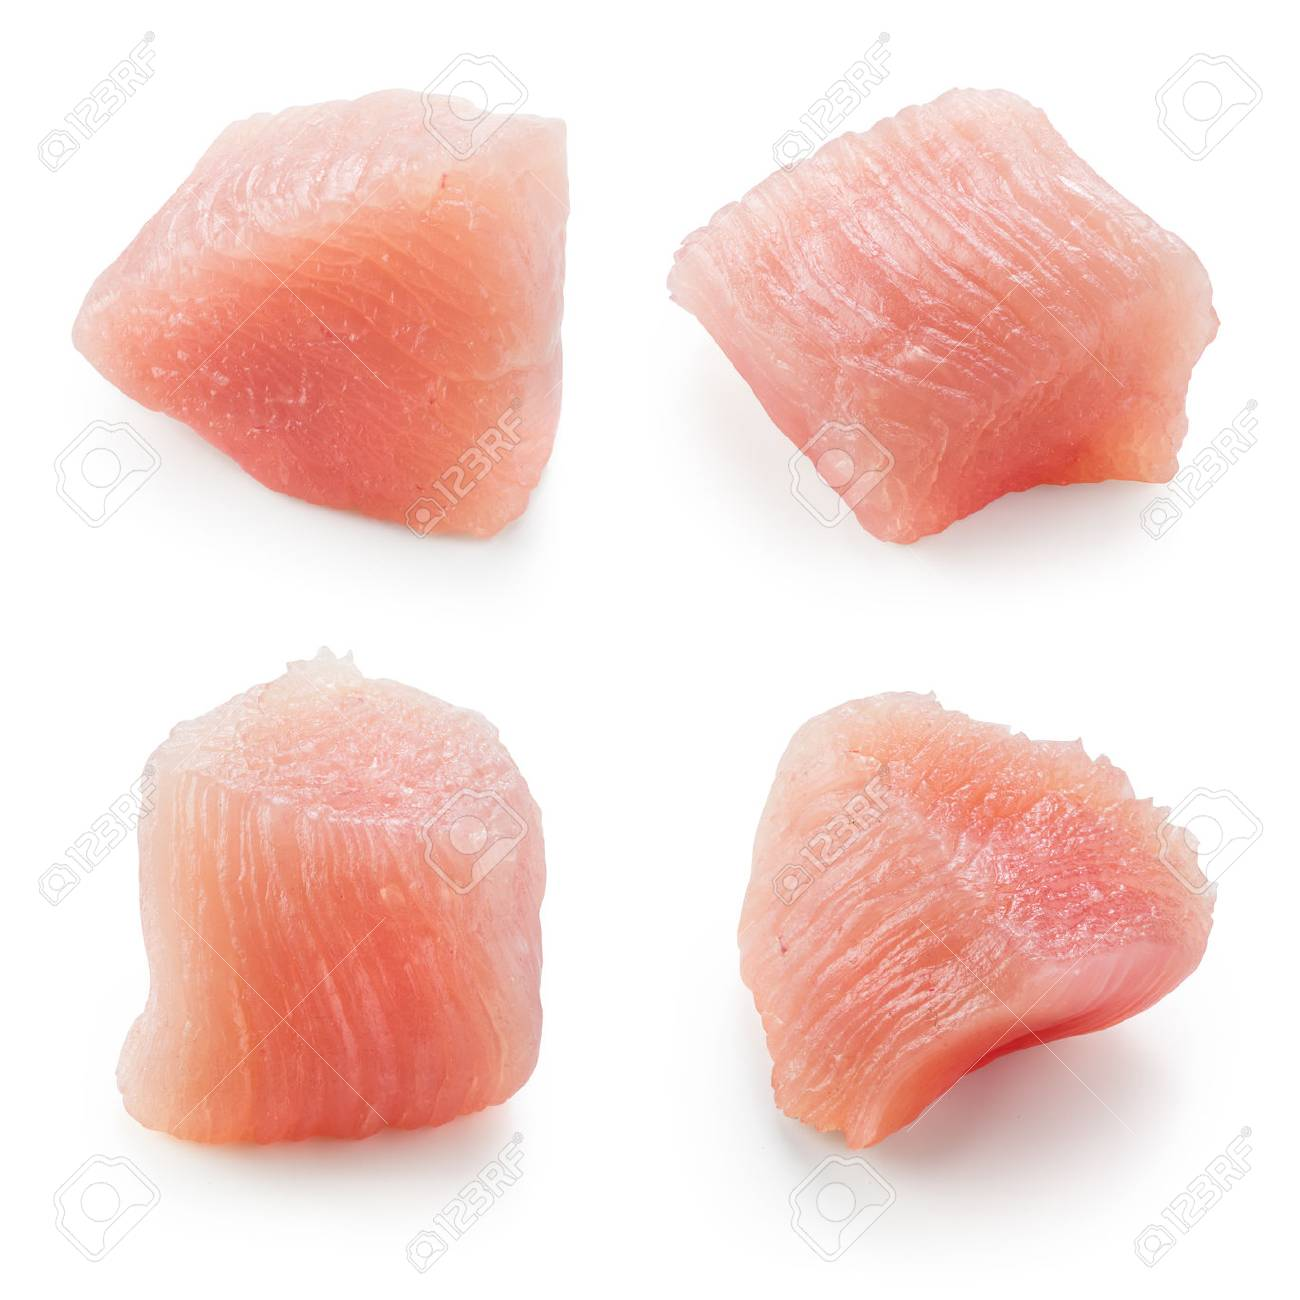 Raw chicken fillet. Small pieces of meat isolated on white. Collection. - 62034396